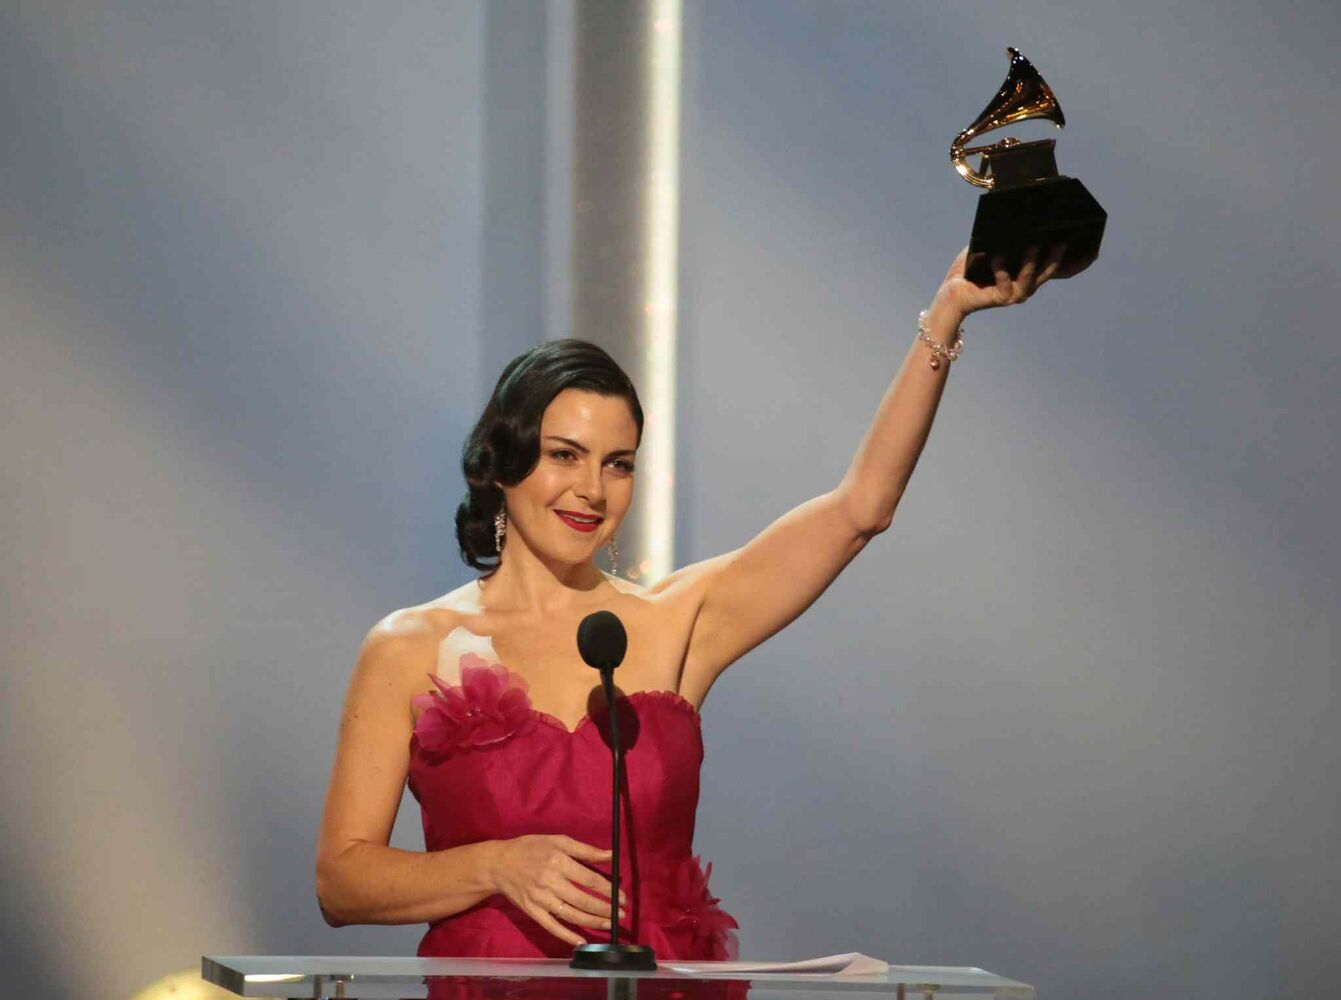 Jennifer Gasoi accepts the Grammy for Best Children's Album at the 56th Annual Grammy Awards. (Robert Gauthier / Los Angeles Times / MCT)